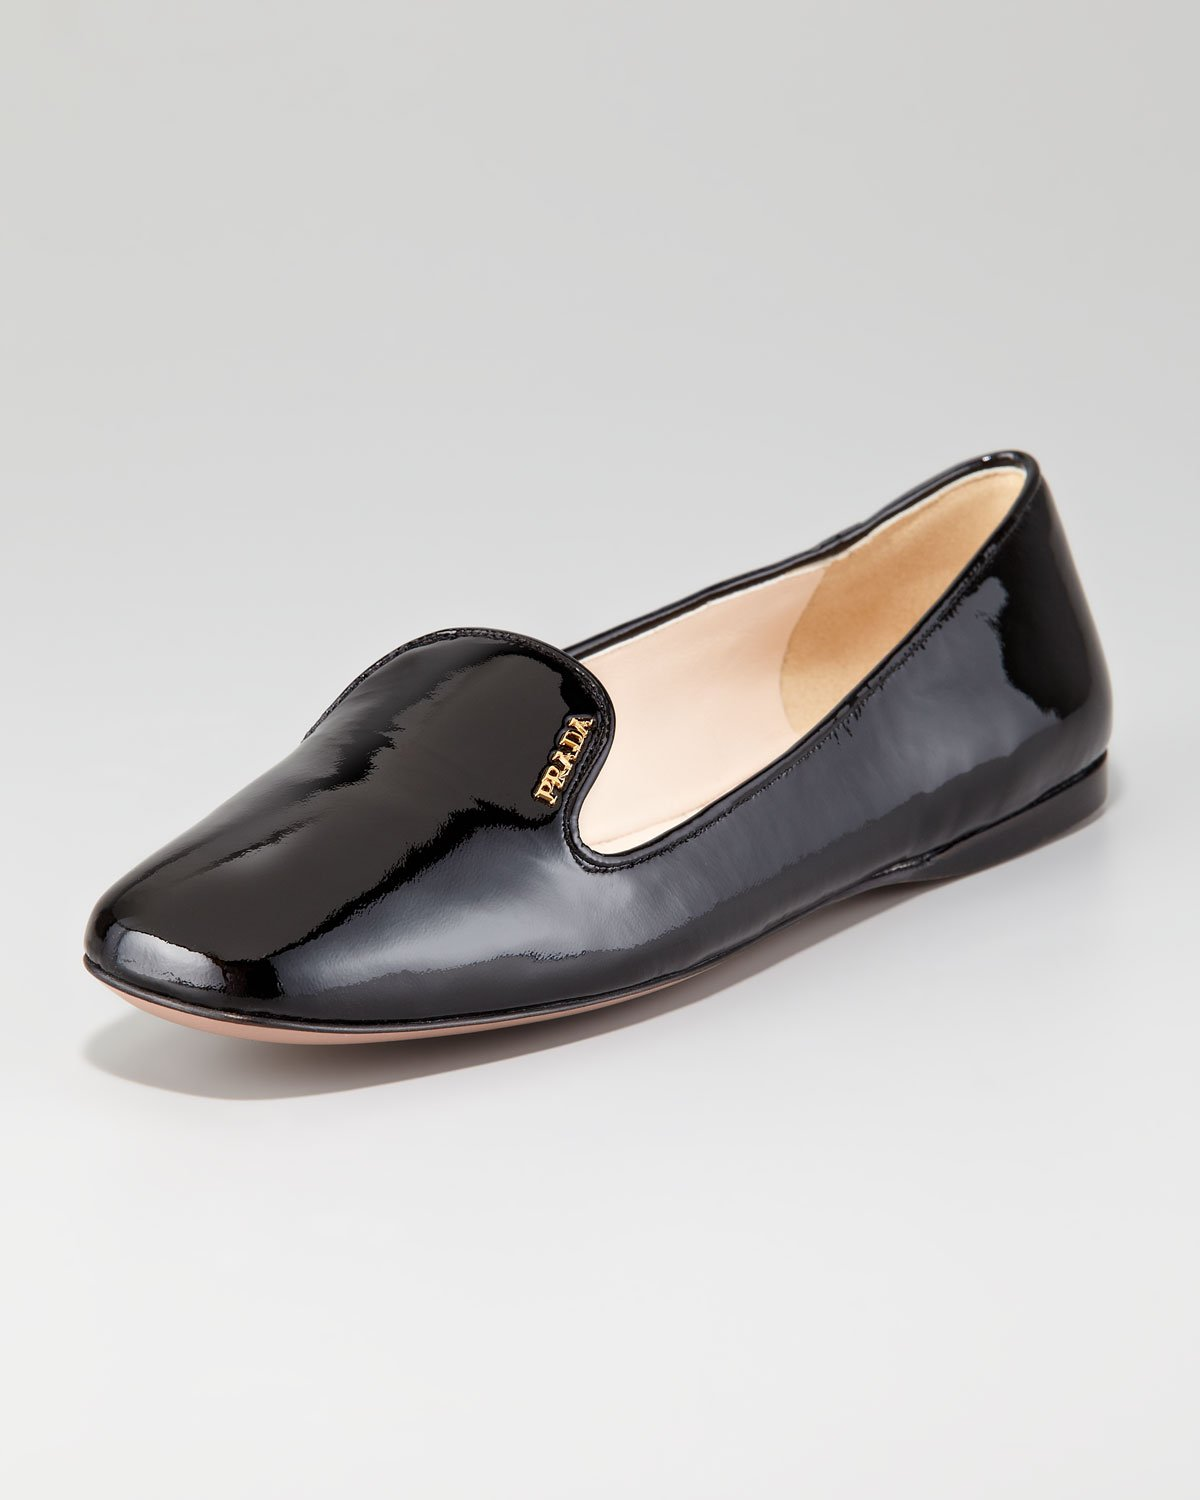 Prada Patent Loafer recommend LdNVeY